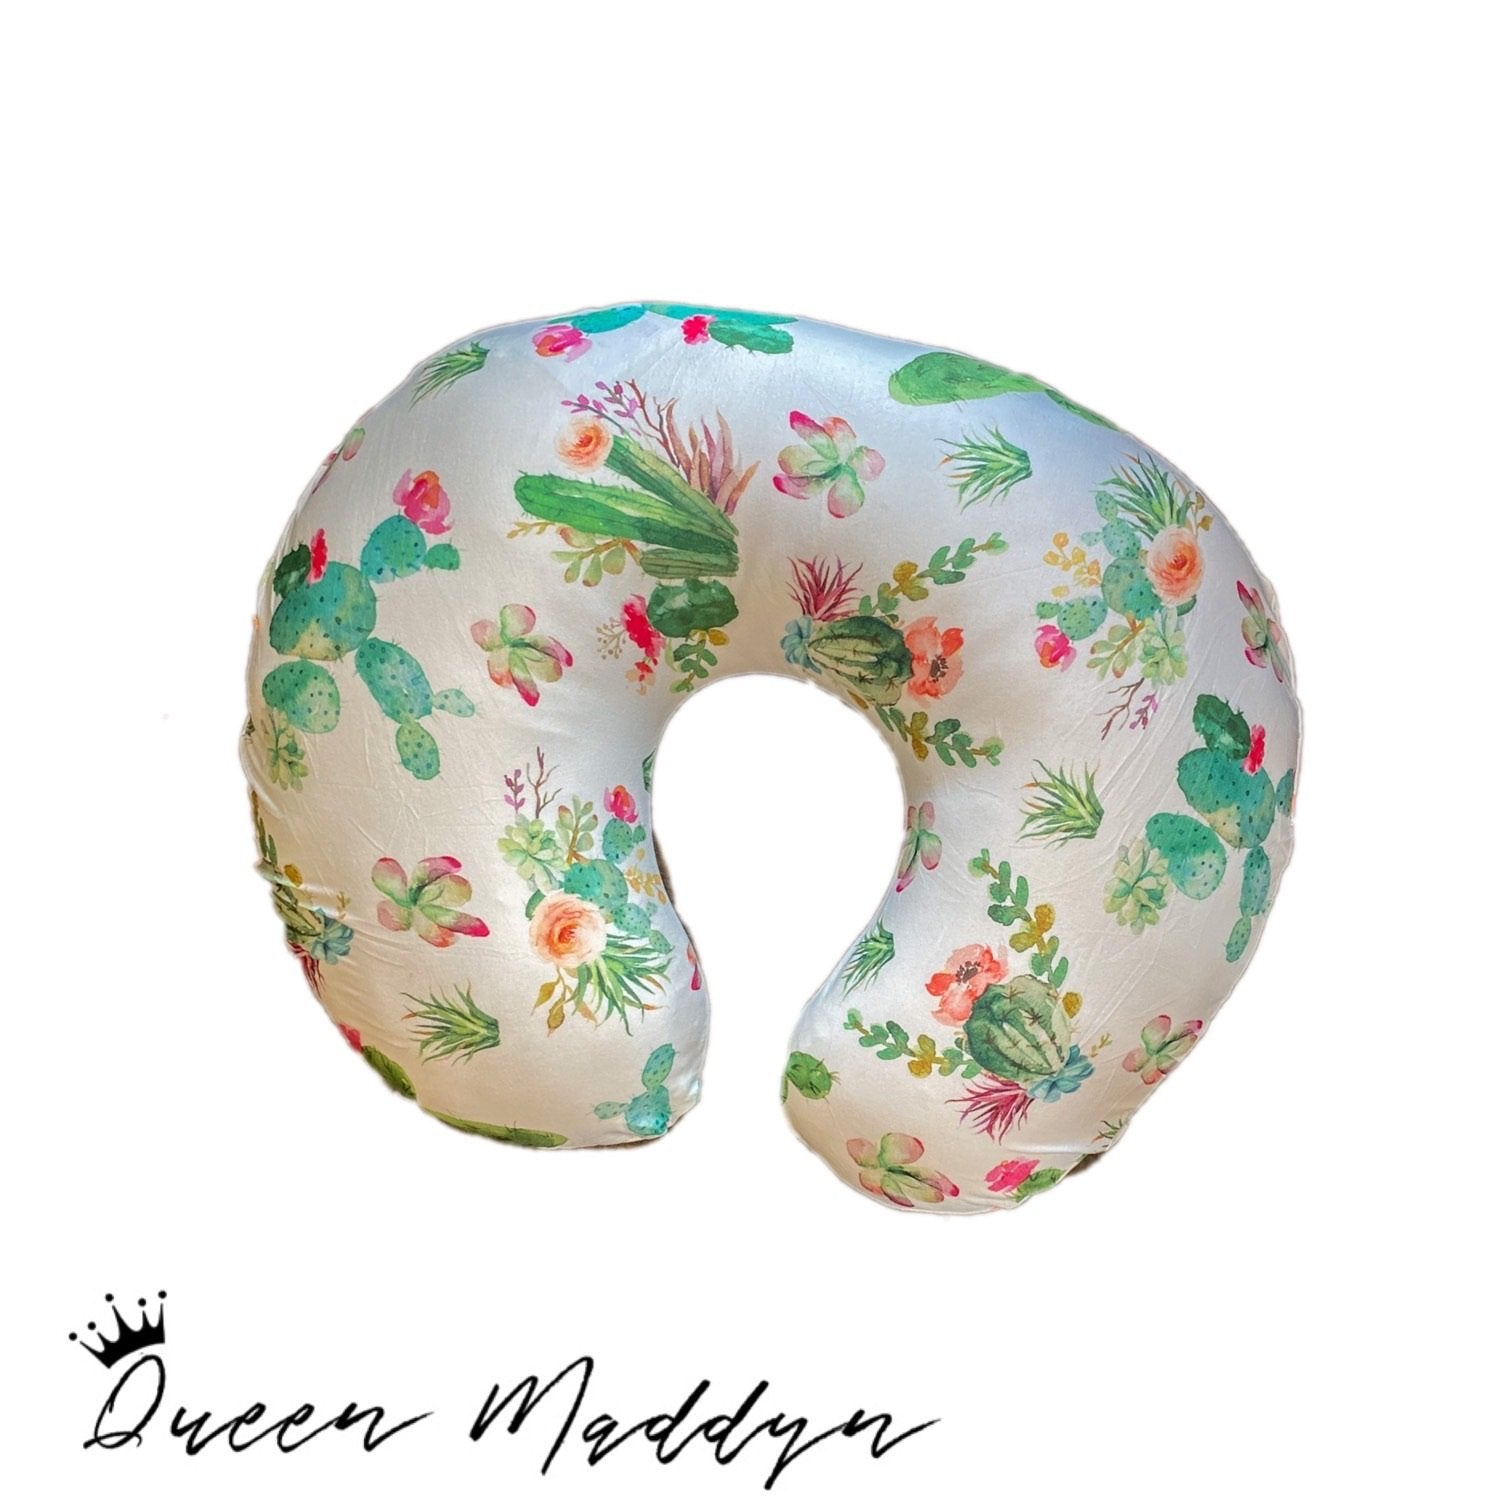 Wild Cactus Nursing Pillow Cover